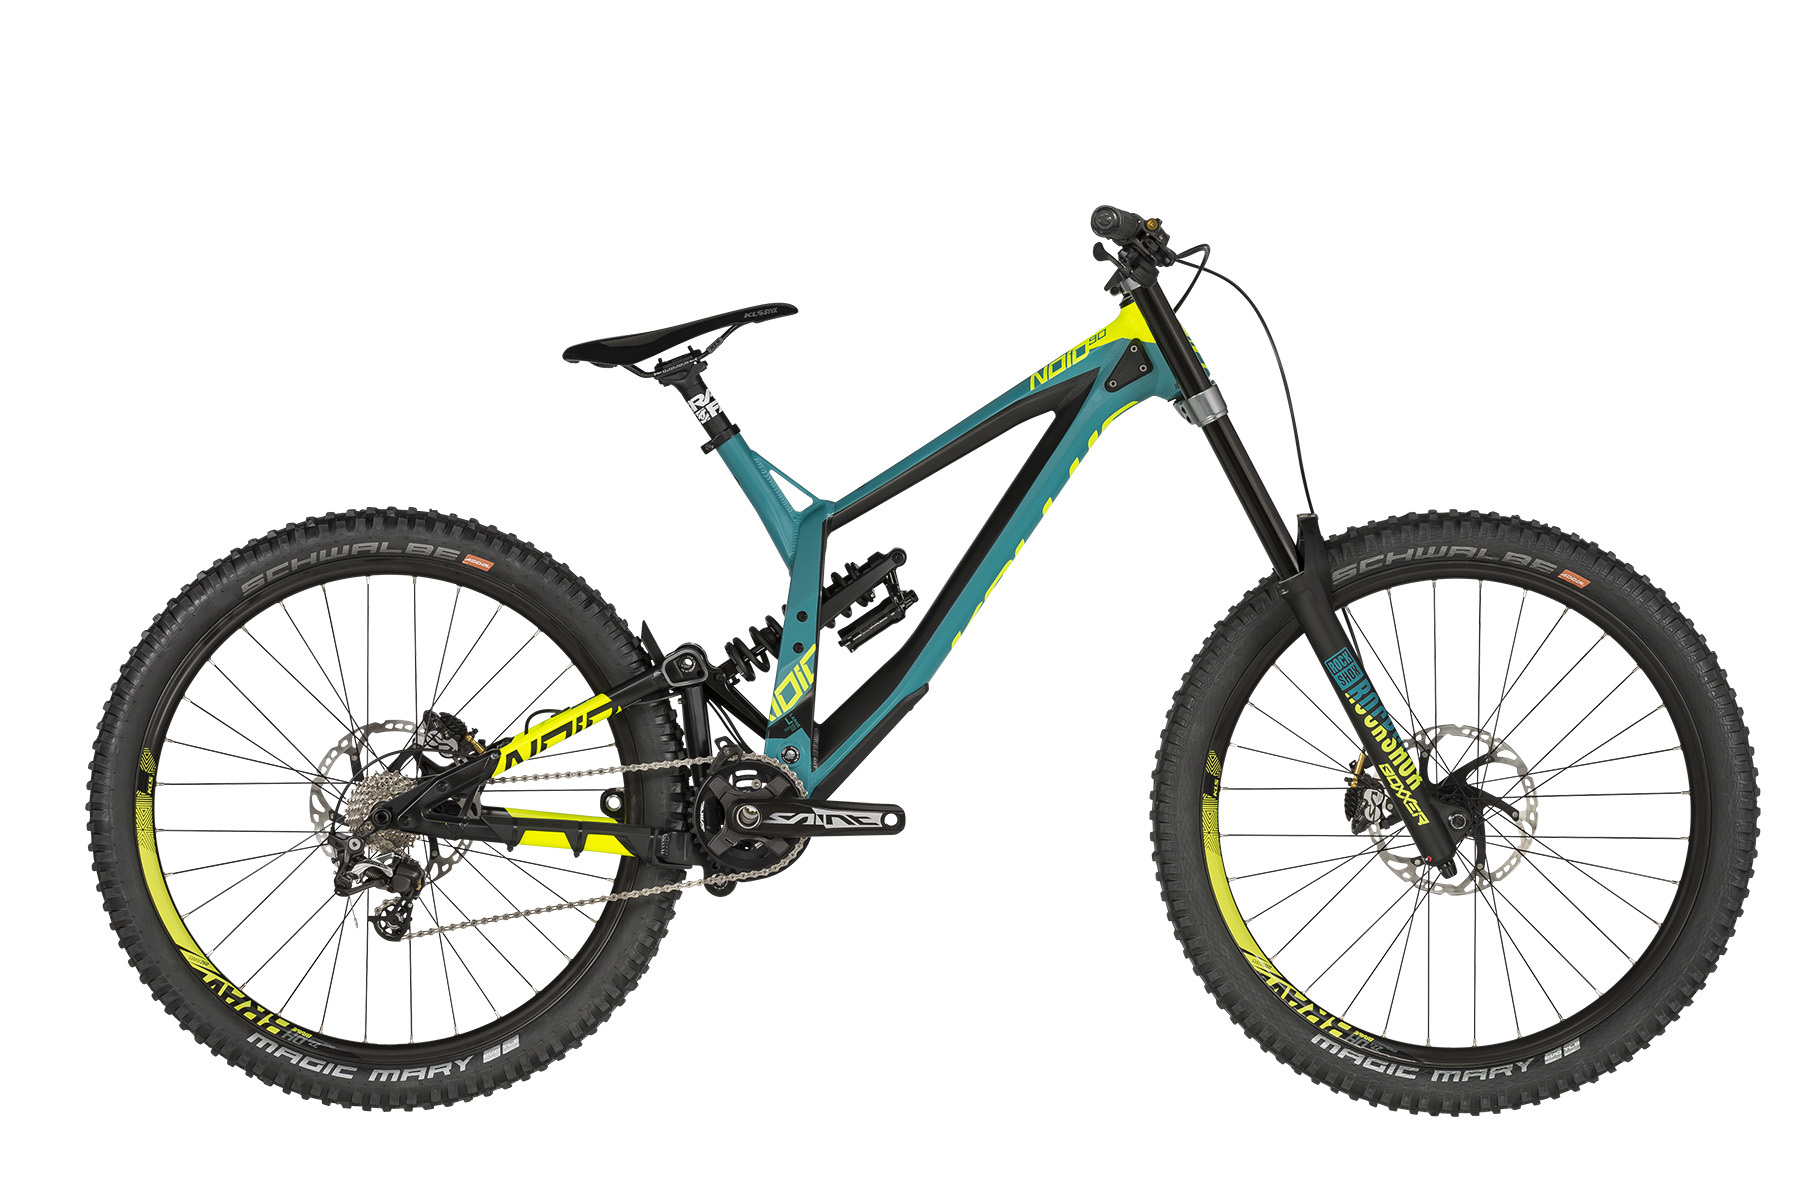 <strong>Bicicleta full suspension </strong>cu telescop fataROCK SHOX Boxxer World Cup DebonAir (27.5) Boost, 200mm si telescop spateROCK SHOX Super Deluxe Coil RC.</p><p><strong>Bicicleta downhill </strong>cu frane hidraulice Shimano Saint si schimbator de spate de 10 viteze Shimano Saint.</p><p><strong>frame</strong>KELLYS Gravity DH 27.5 / Think Link suspension system, 205mm rear travel, internal routing, ISCG 05, 12x150mm thru axle<br /><strong>frame size</strong>M / L / XL<br /><strong>fork</strong>ROCK SHOX Boxxer World Cup DebonAir (27.5) Boost, 200mm, Charger Damper 2 RC2 / Maxle Stealth 20mm thru axle<br /><strong>rear shock</strong>ROCK SHOX Super Deluxe Coil RC / Rapid Recovery (250x75mm)<br /><strong>head parts</strong>FSA 1.5 integrated<br /><strong>b.b.parts</strong>SHIMANO Press-Fit BB71-41A<br /><strong>crankset</strong>SHIMANO Saint M825 Hollowtech II (34) - length 165mm<br /><strong>shifters</strong>SHIMANO Zee SL-M640 Rapidfire Plus (rear)<br /><strong>f/derailleur</strong>chain guide MOZARTT HXR, ISCG 05<br /><strong>r/derailleur</strong>SHIMANO Saint M820 (direct mount)<br /><strong>speed</strong>10<br /><strong>cassette sprocket</strong>SHIMANO CS-HG500-10 (11-25)<br /><strong>chain</strong>KMC X10 EL (102 links)<br /><strong>brakes</strong>SHIMANO Saint M820 Hydraulic Disc<br /><strong>brake rotors</strong>203mm front / 203mm rear<br /><strong>brake levers</strong>SHIMANO Saint BL-M820<br /><strong>hubs</strong>NOVATEC DH Disc (20x110mm / 12x150mm / 32 holes)<br /><strong>thru axle</strong>ROCK SHOX Maxle Stealth 20x110mm front / Mr.CONTROL 12x150mm rear<br /><strong>rims</strong>KLS Brave Disc 584x23 (32 holes)<br /><strong>spokes</strong>stainless steel black<br /><strong>tires</strong>SCHWALBE Magic Mary 60-584 (27.5x2.35) SnakeSkin, Tubeless Easy, ADDIX Soft, folding<br /><strong>stem</strong>RACE FACE Atlas DM - direct mount / bar bore 31.8mm<br /><strong>handlebar</strong>RACE FACE Atlas RiseBar - diam 31.8mm / width 785mm<br /><strong>gr